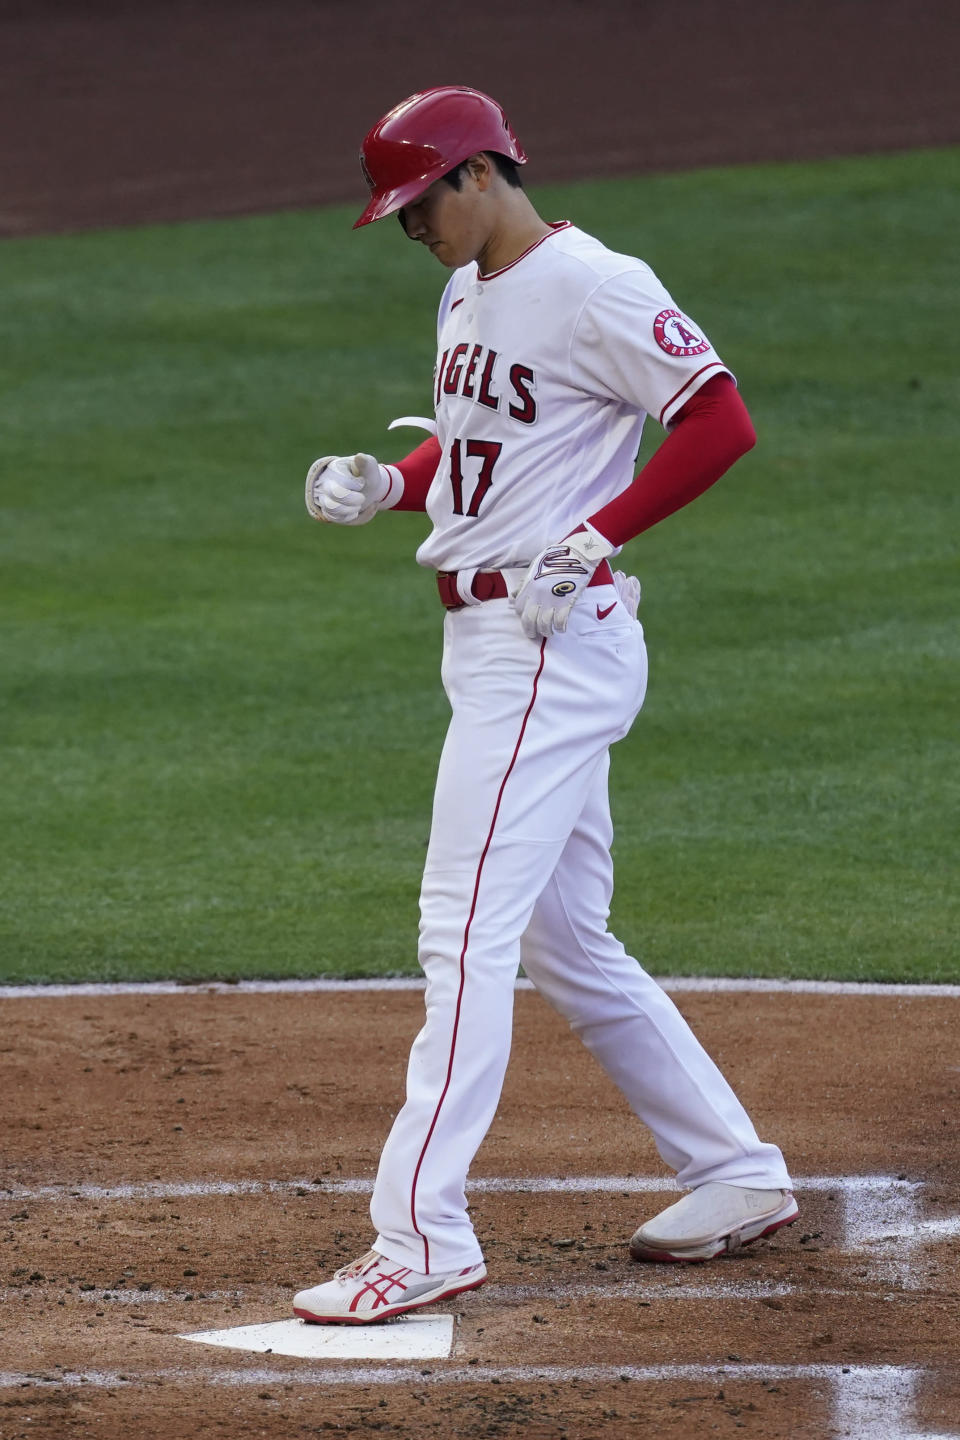 Los Angeles Angels starting pitcher Shohei Ohtani (17) crosses home plate after hitting a home run during the first inning of a baseball game against the Chicago White Sox Sunday, April 4, 2021, in Anaheim, Calif. (AP Photo/Ashley Landis)